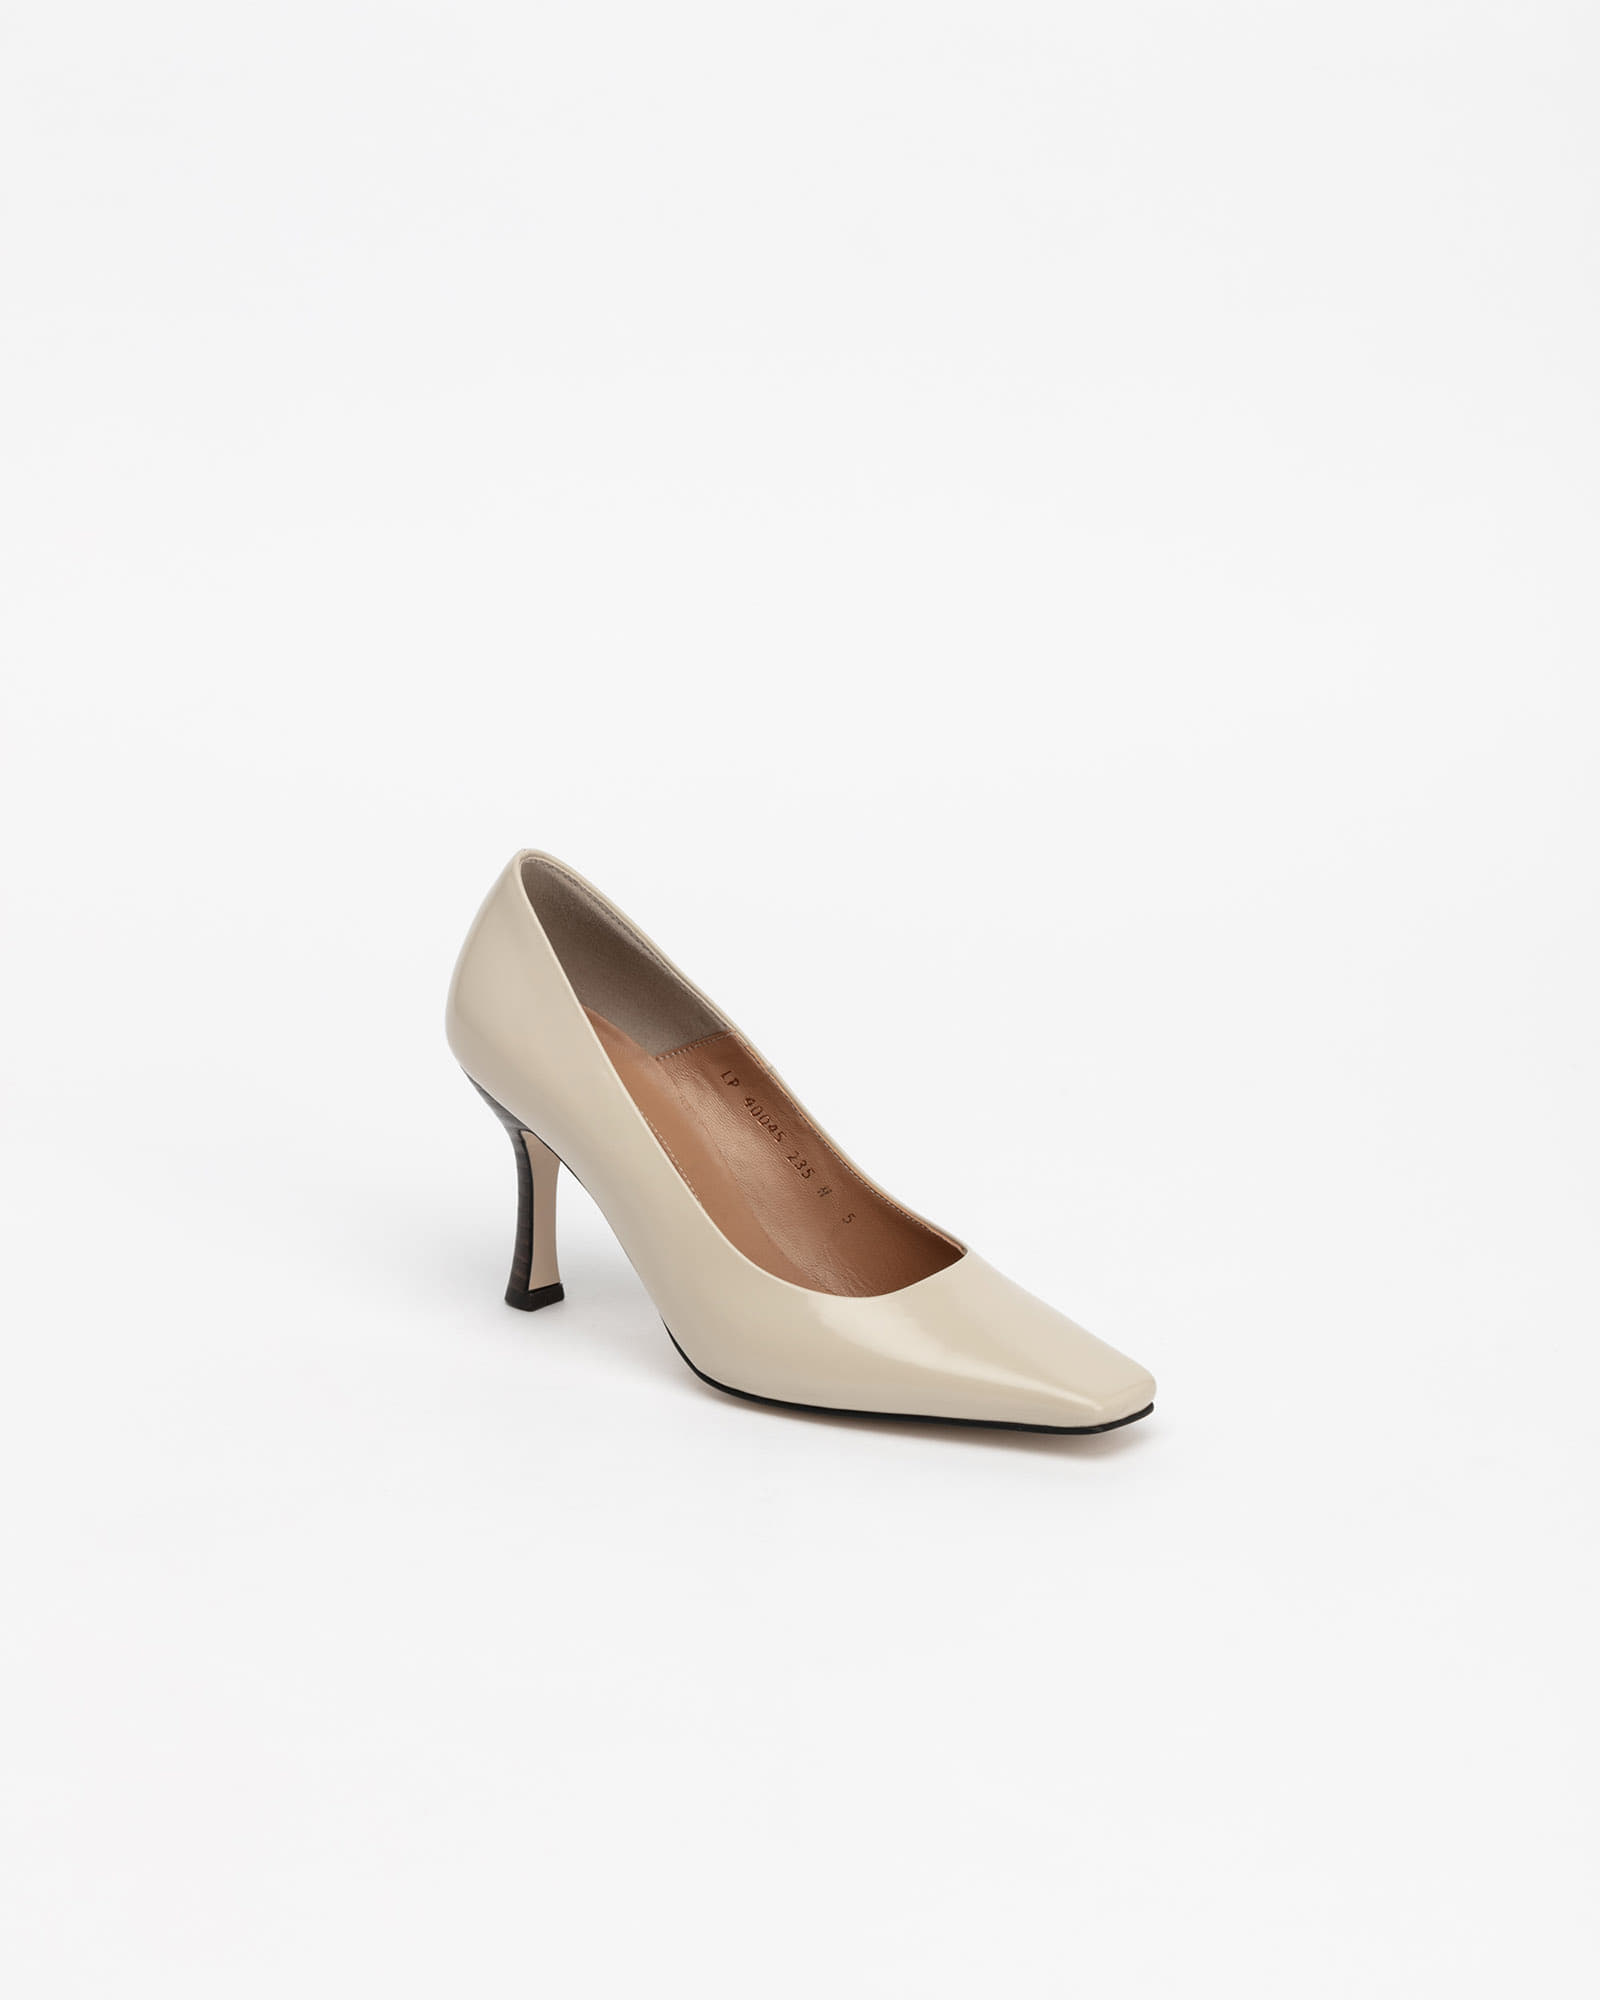 Seraff Pumps in Cream Ivory Box